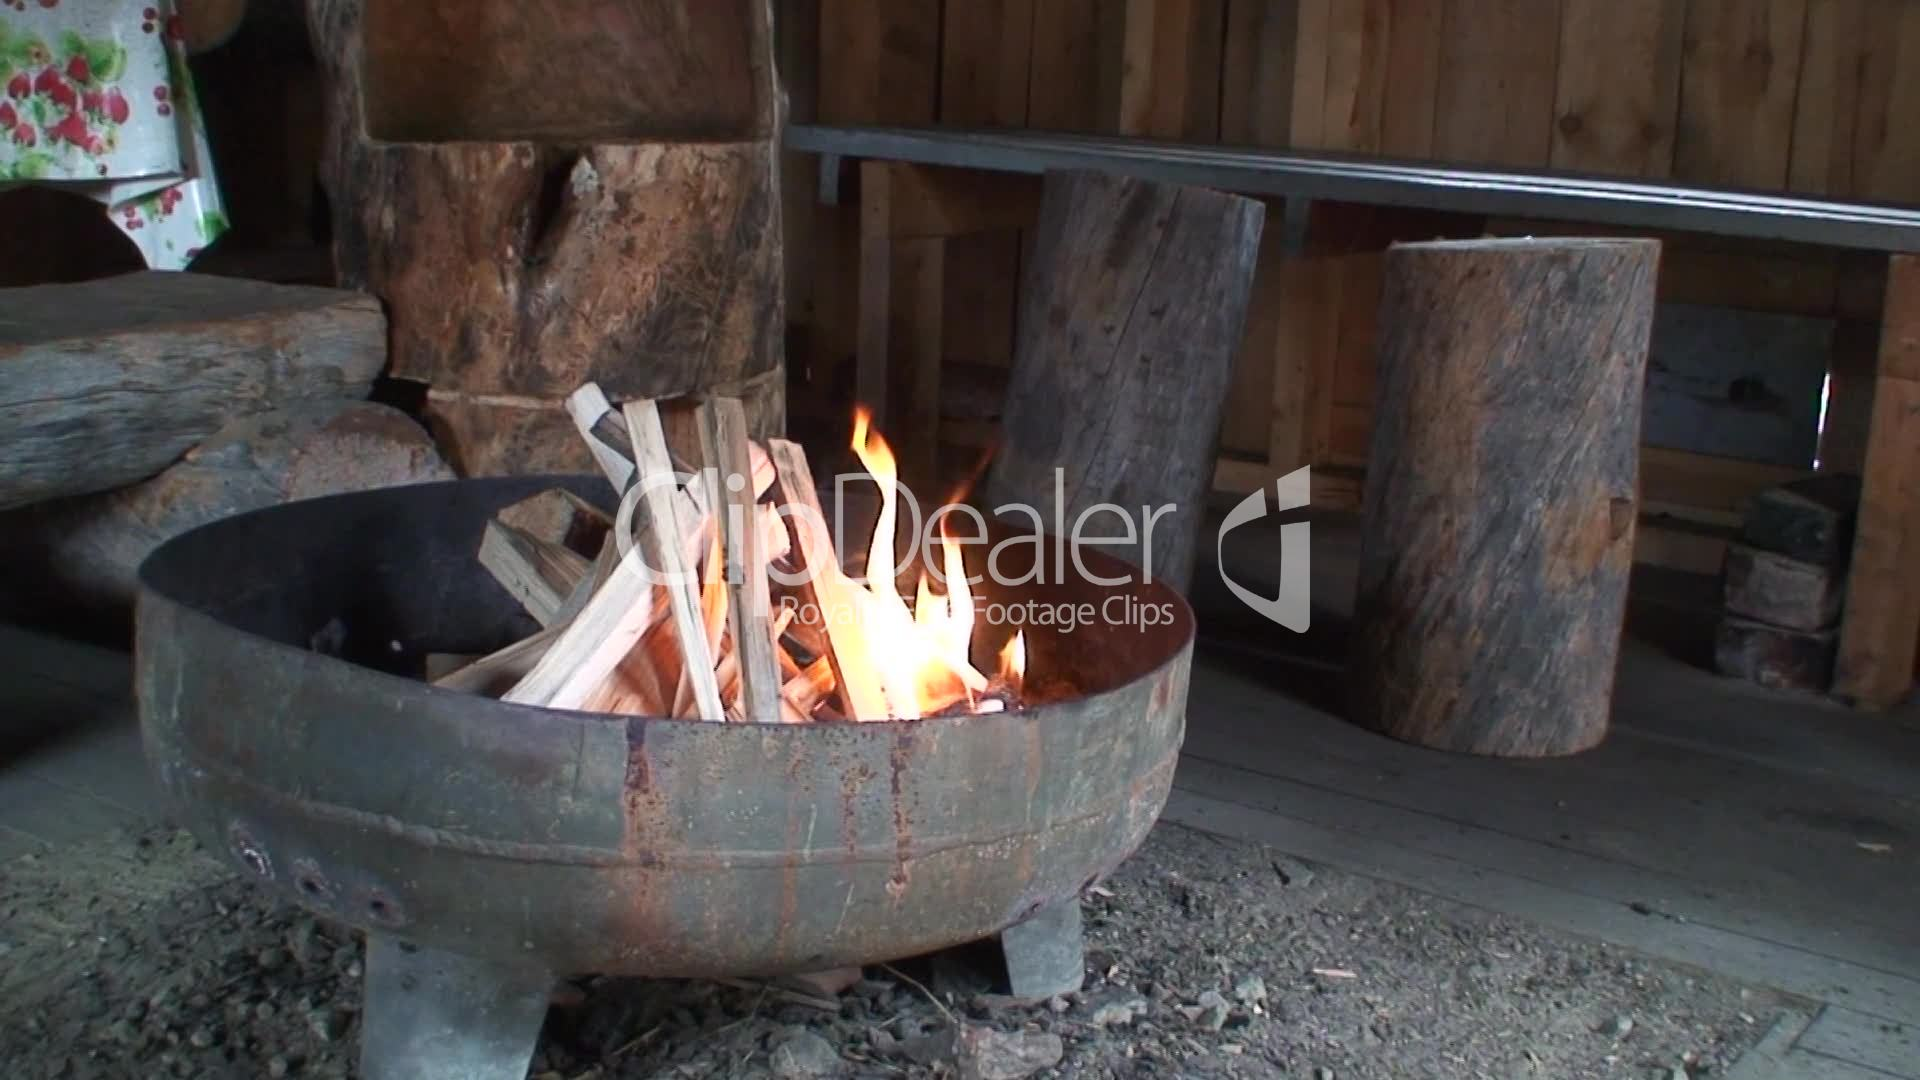 Feuerplatz Im Grillhaus 4 Royalty Free Video And Stock Footage